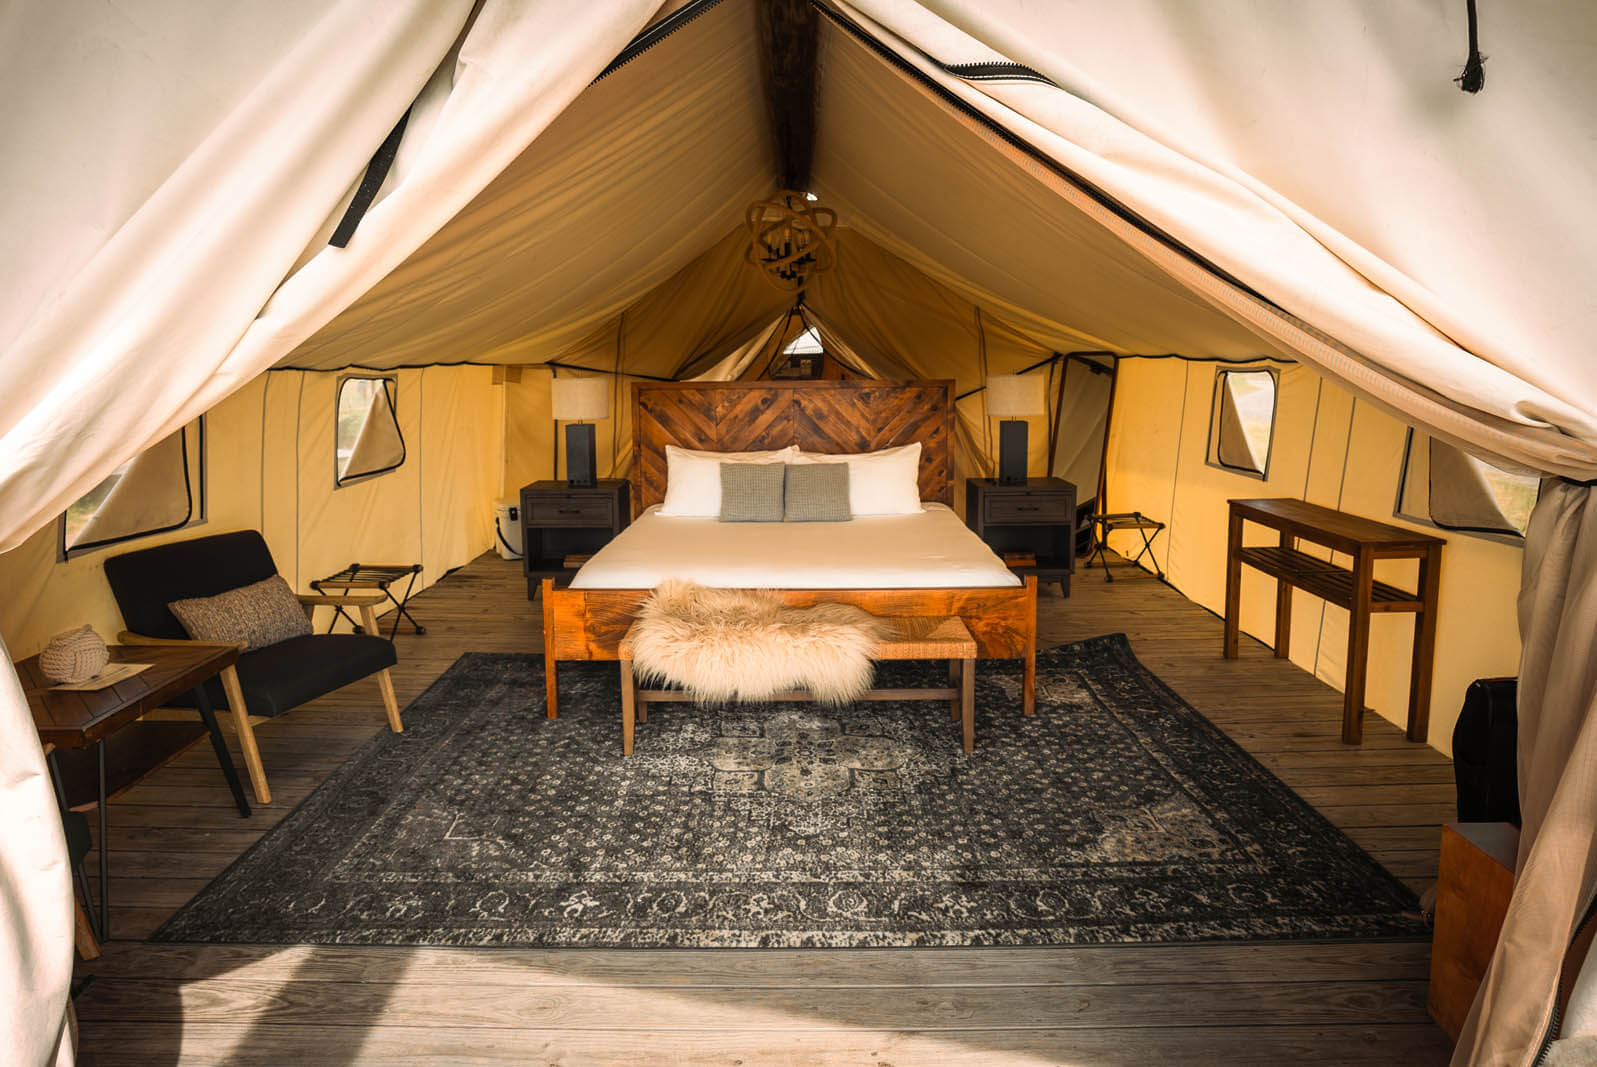 inside the summit glamping tent at governors island in NYC